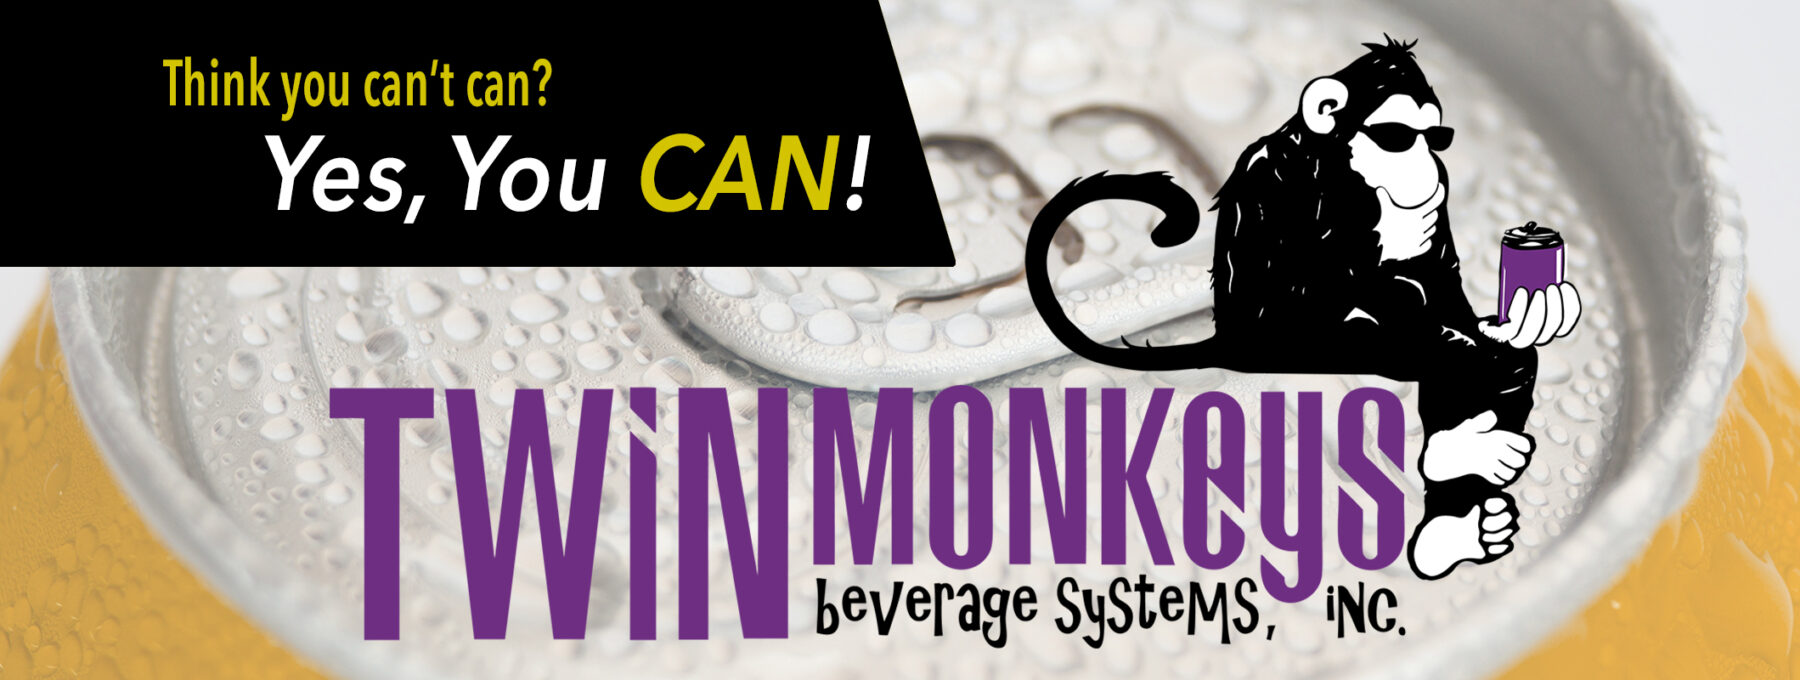 Twin Monkeys Beverage Canning Systems Intro Image